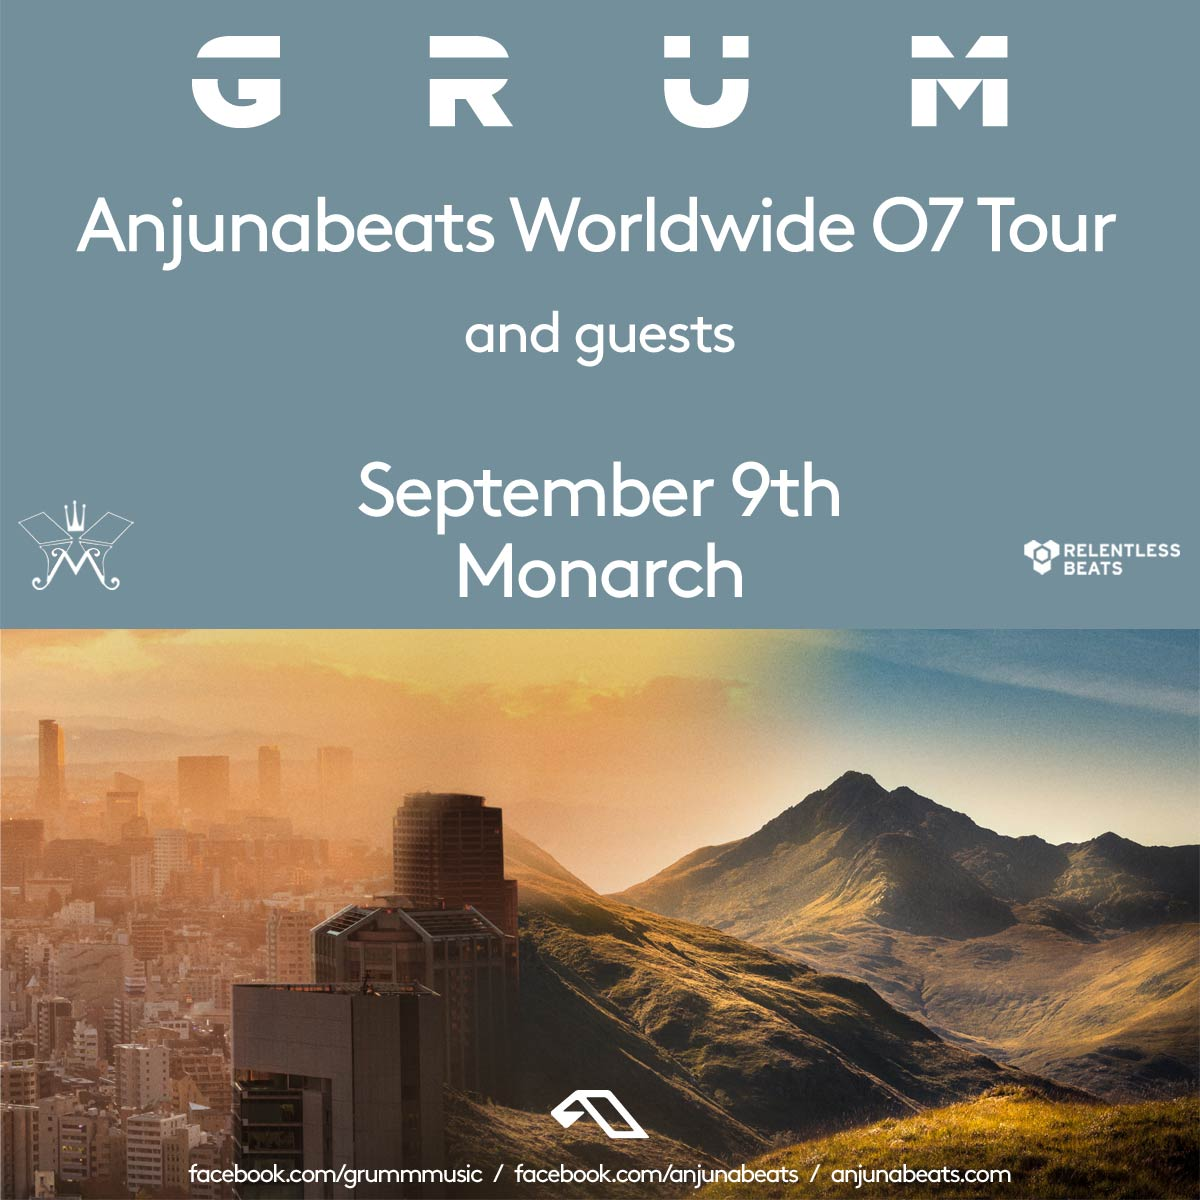 Flyer for Anjunabeats Worldwide 07 Tour ft. Grum